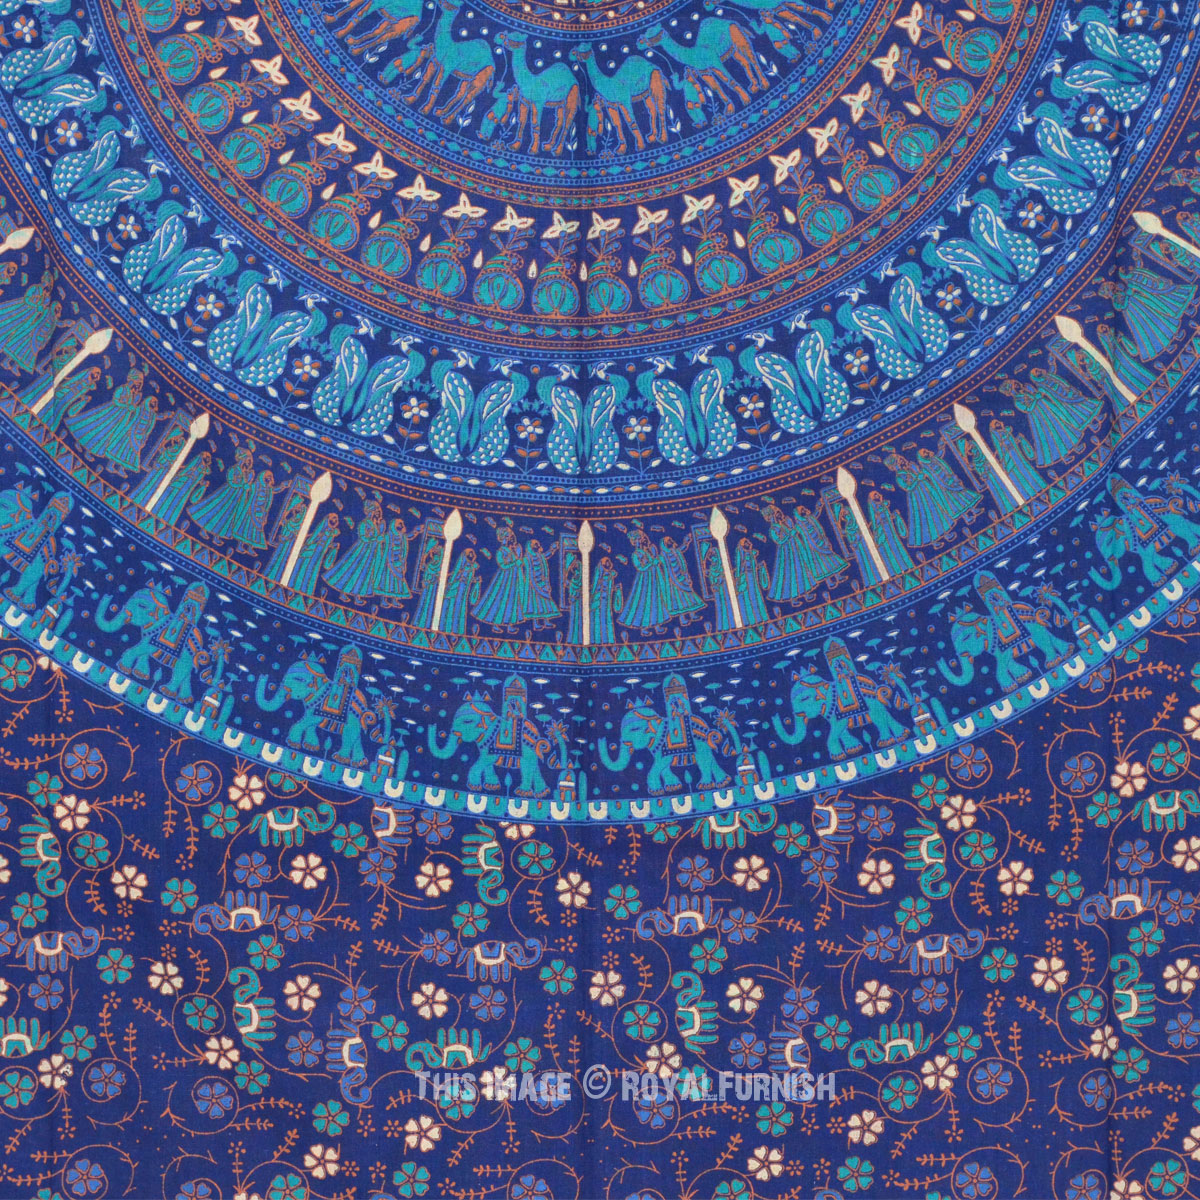 Twin Blue Boho Chic Style Outdoor Indoor Mandala Bohemian